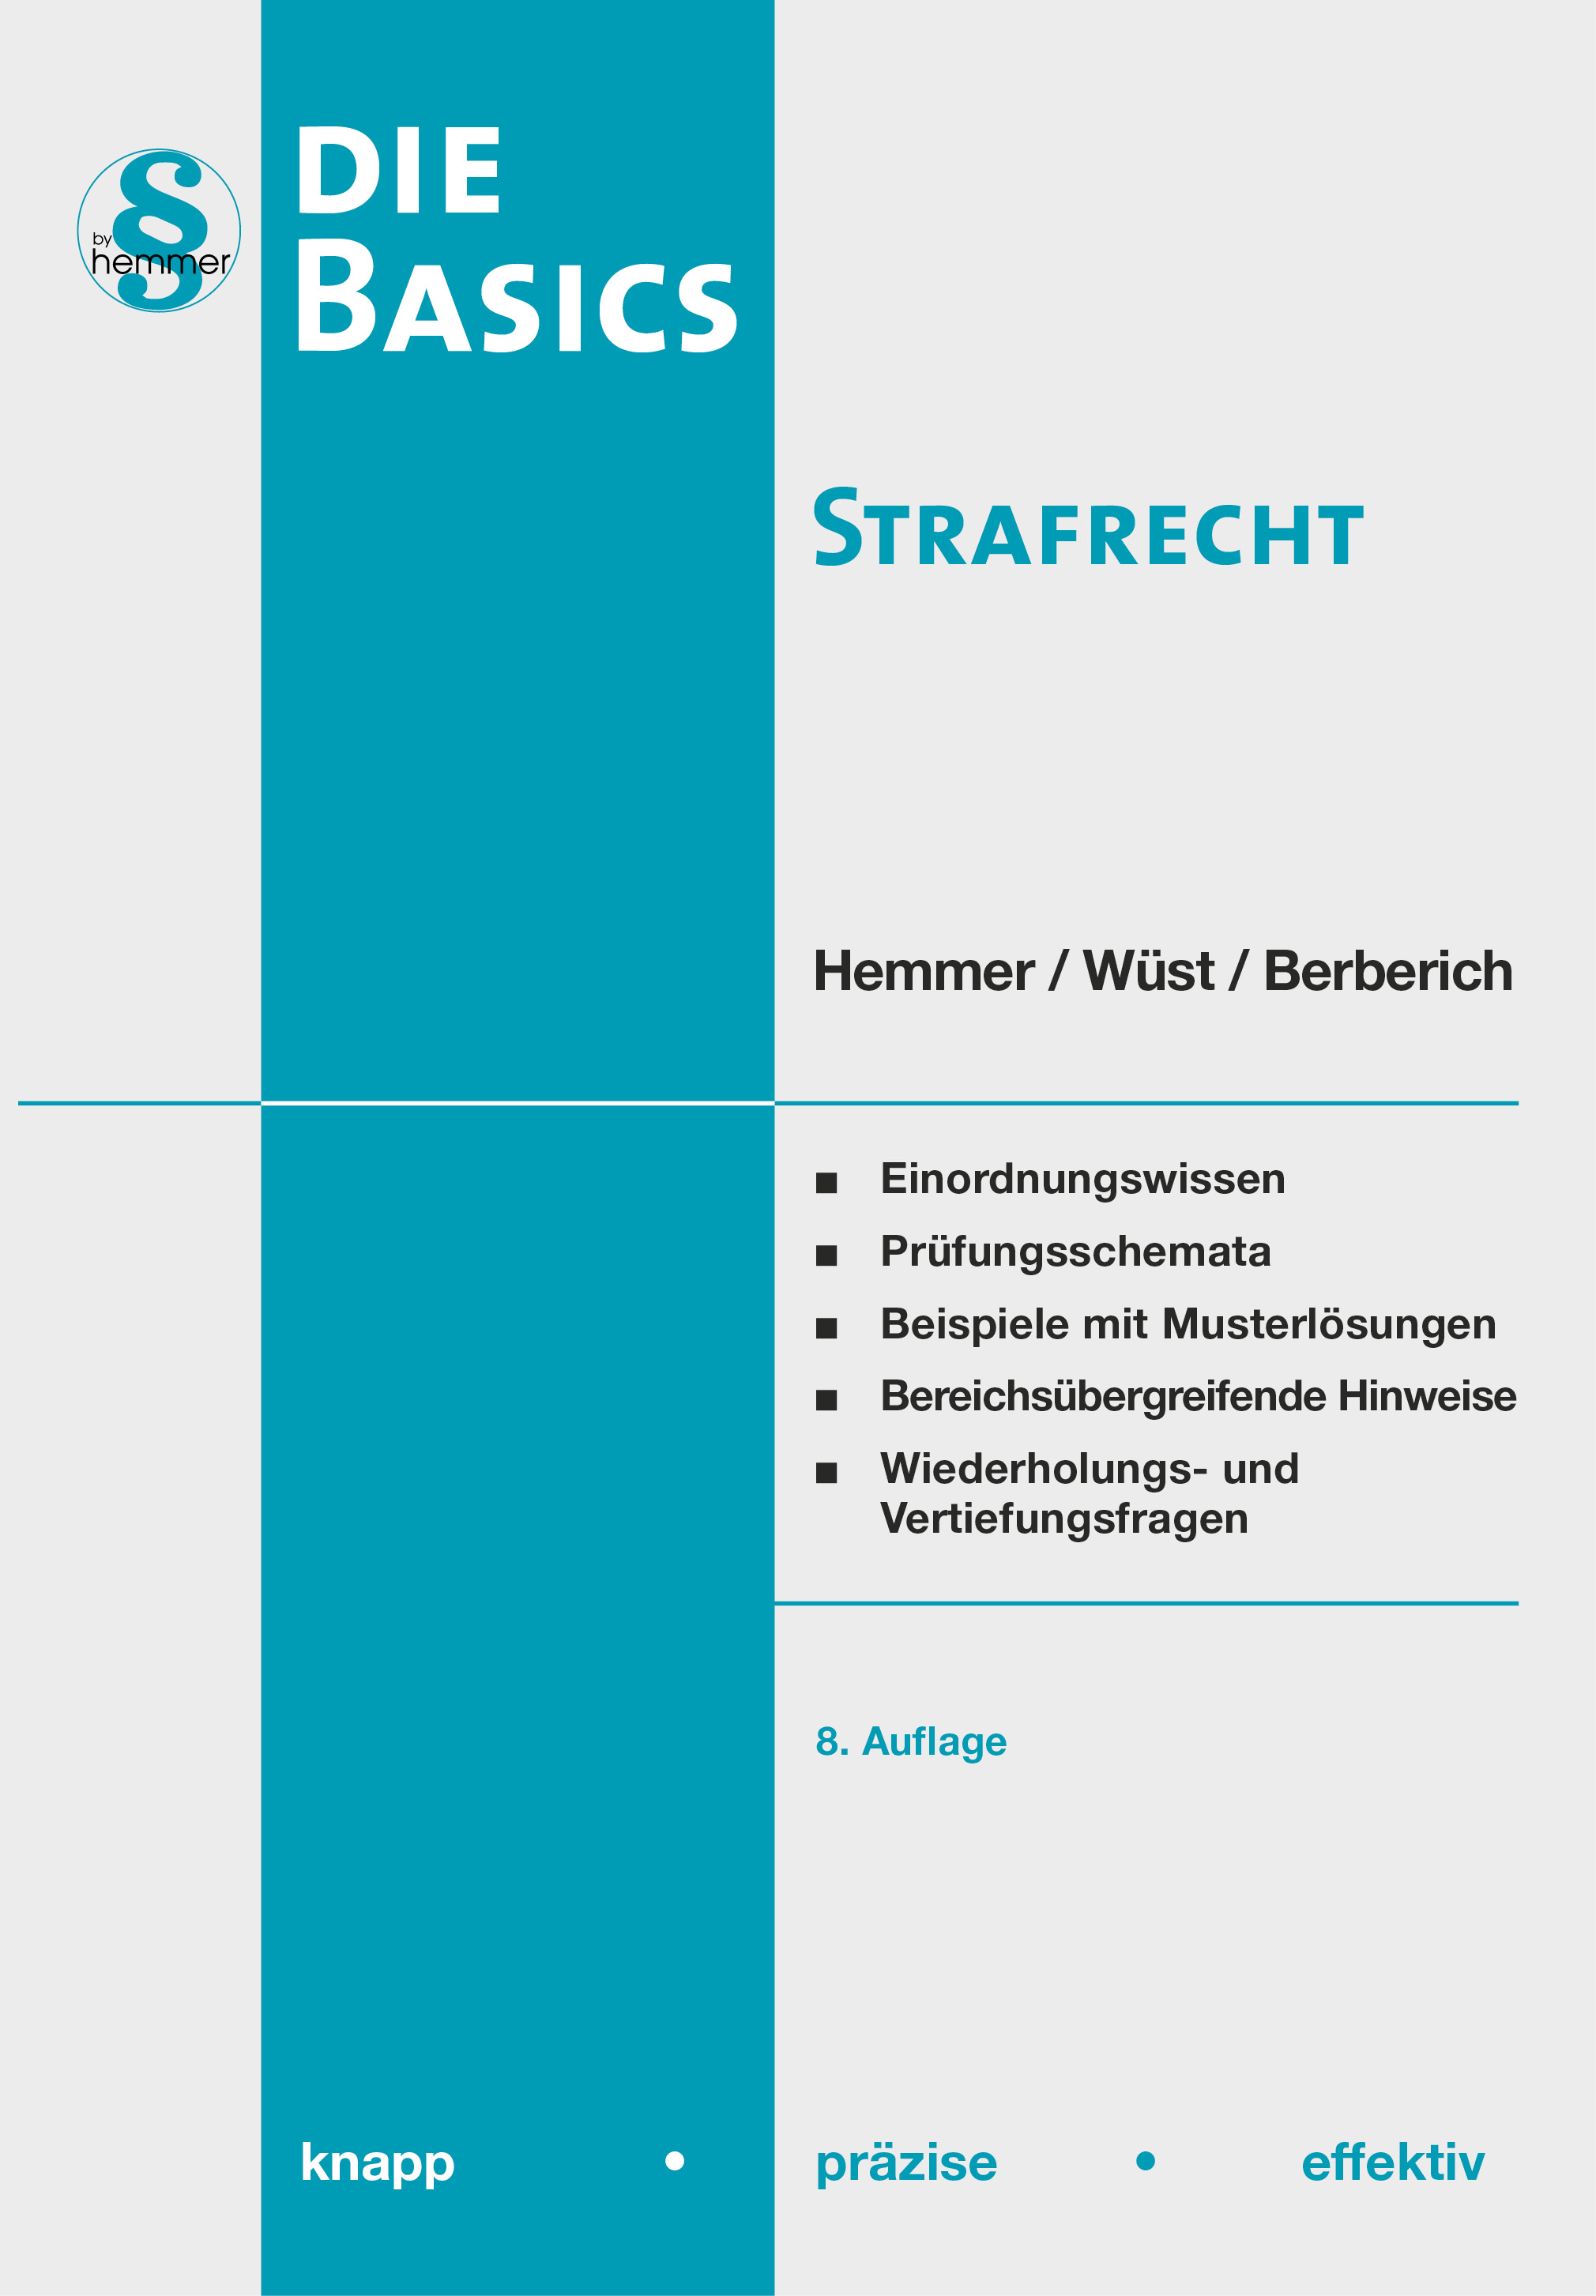 eBook Basics Strafrecht